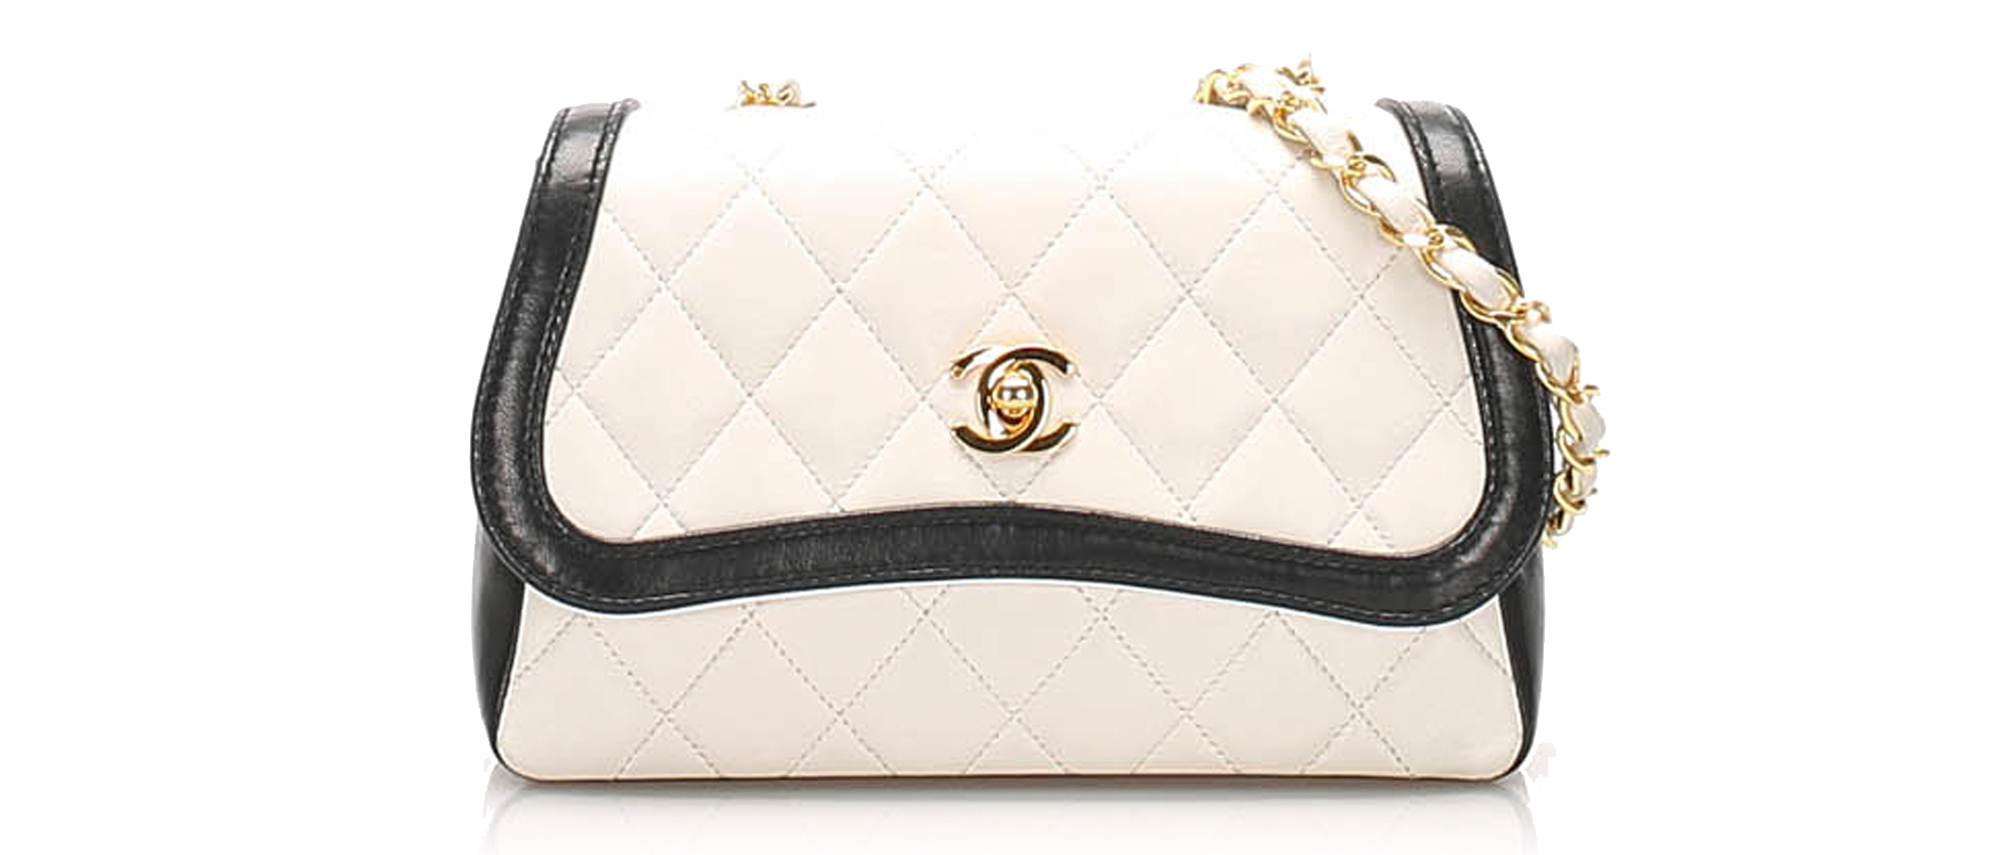 Chanel Mini Matelasse Leather Flap Shoulder Bag incl. Portemonnee